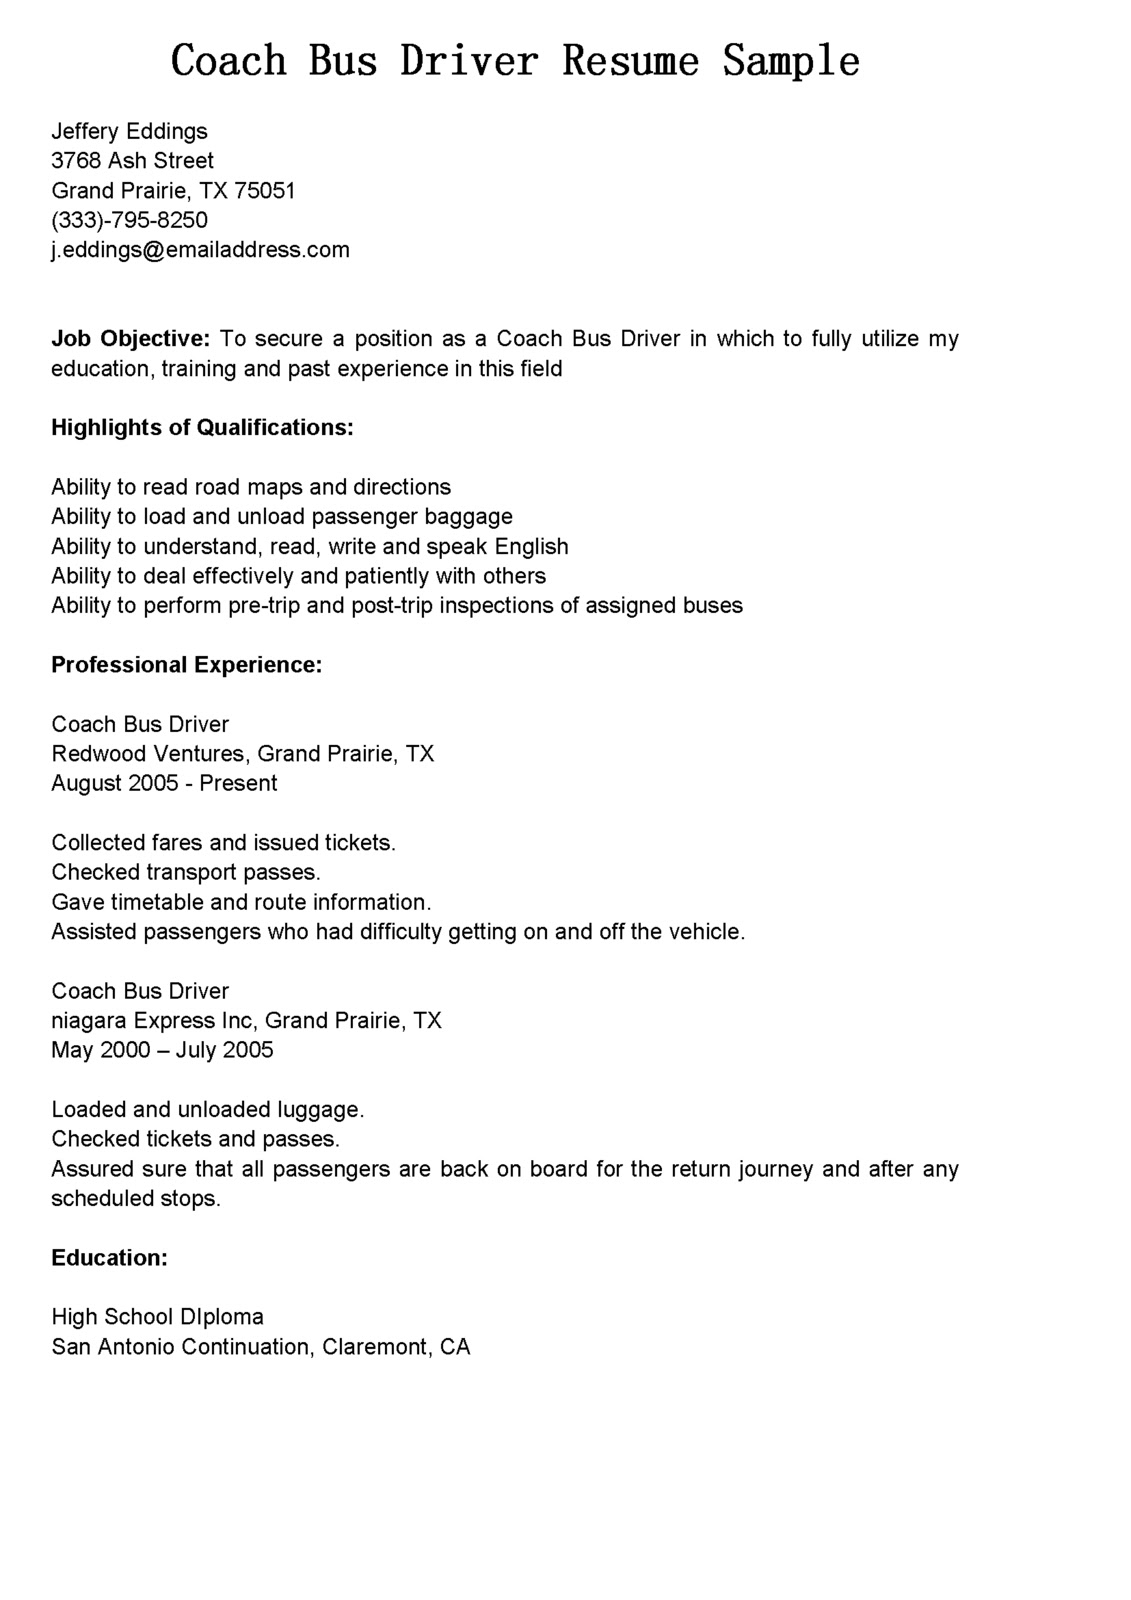 example resume for driver objective resume builder example resume for driver objective truck driver resume objective examples driver resumes coach bus driver resume